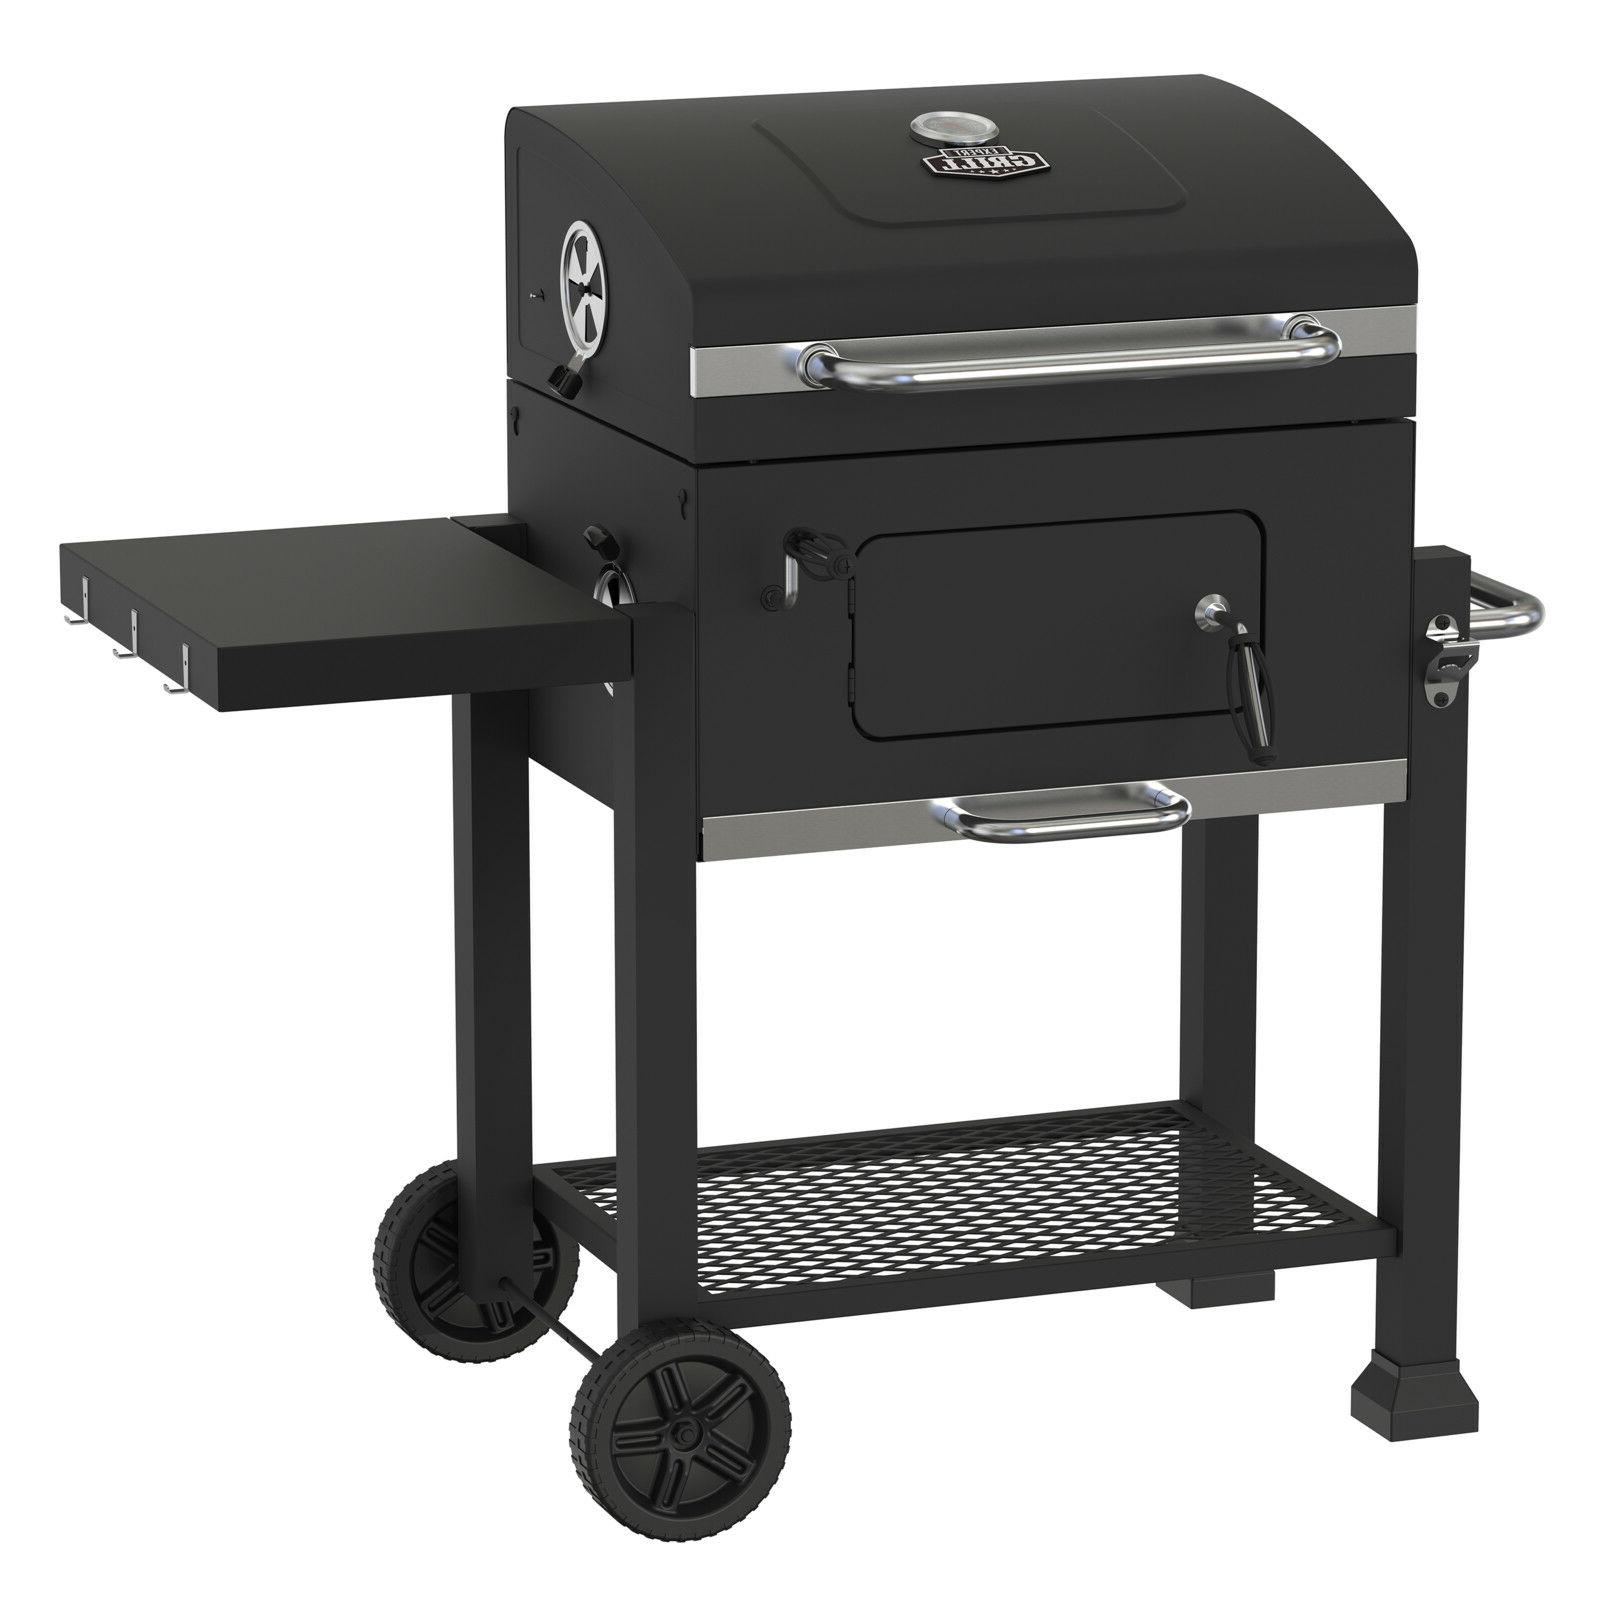 "CLEARANCE - Expert 24"" Charcoal Grill SHIPPING!!"